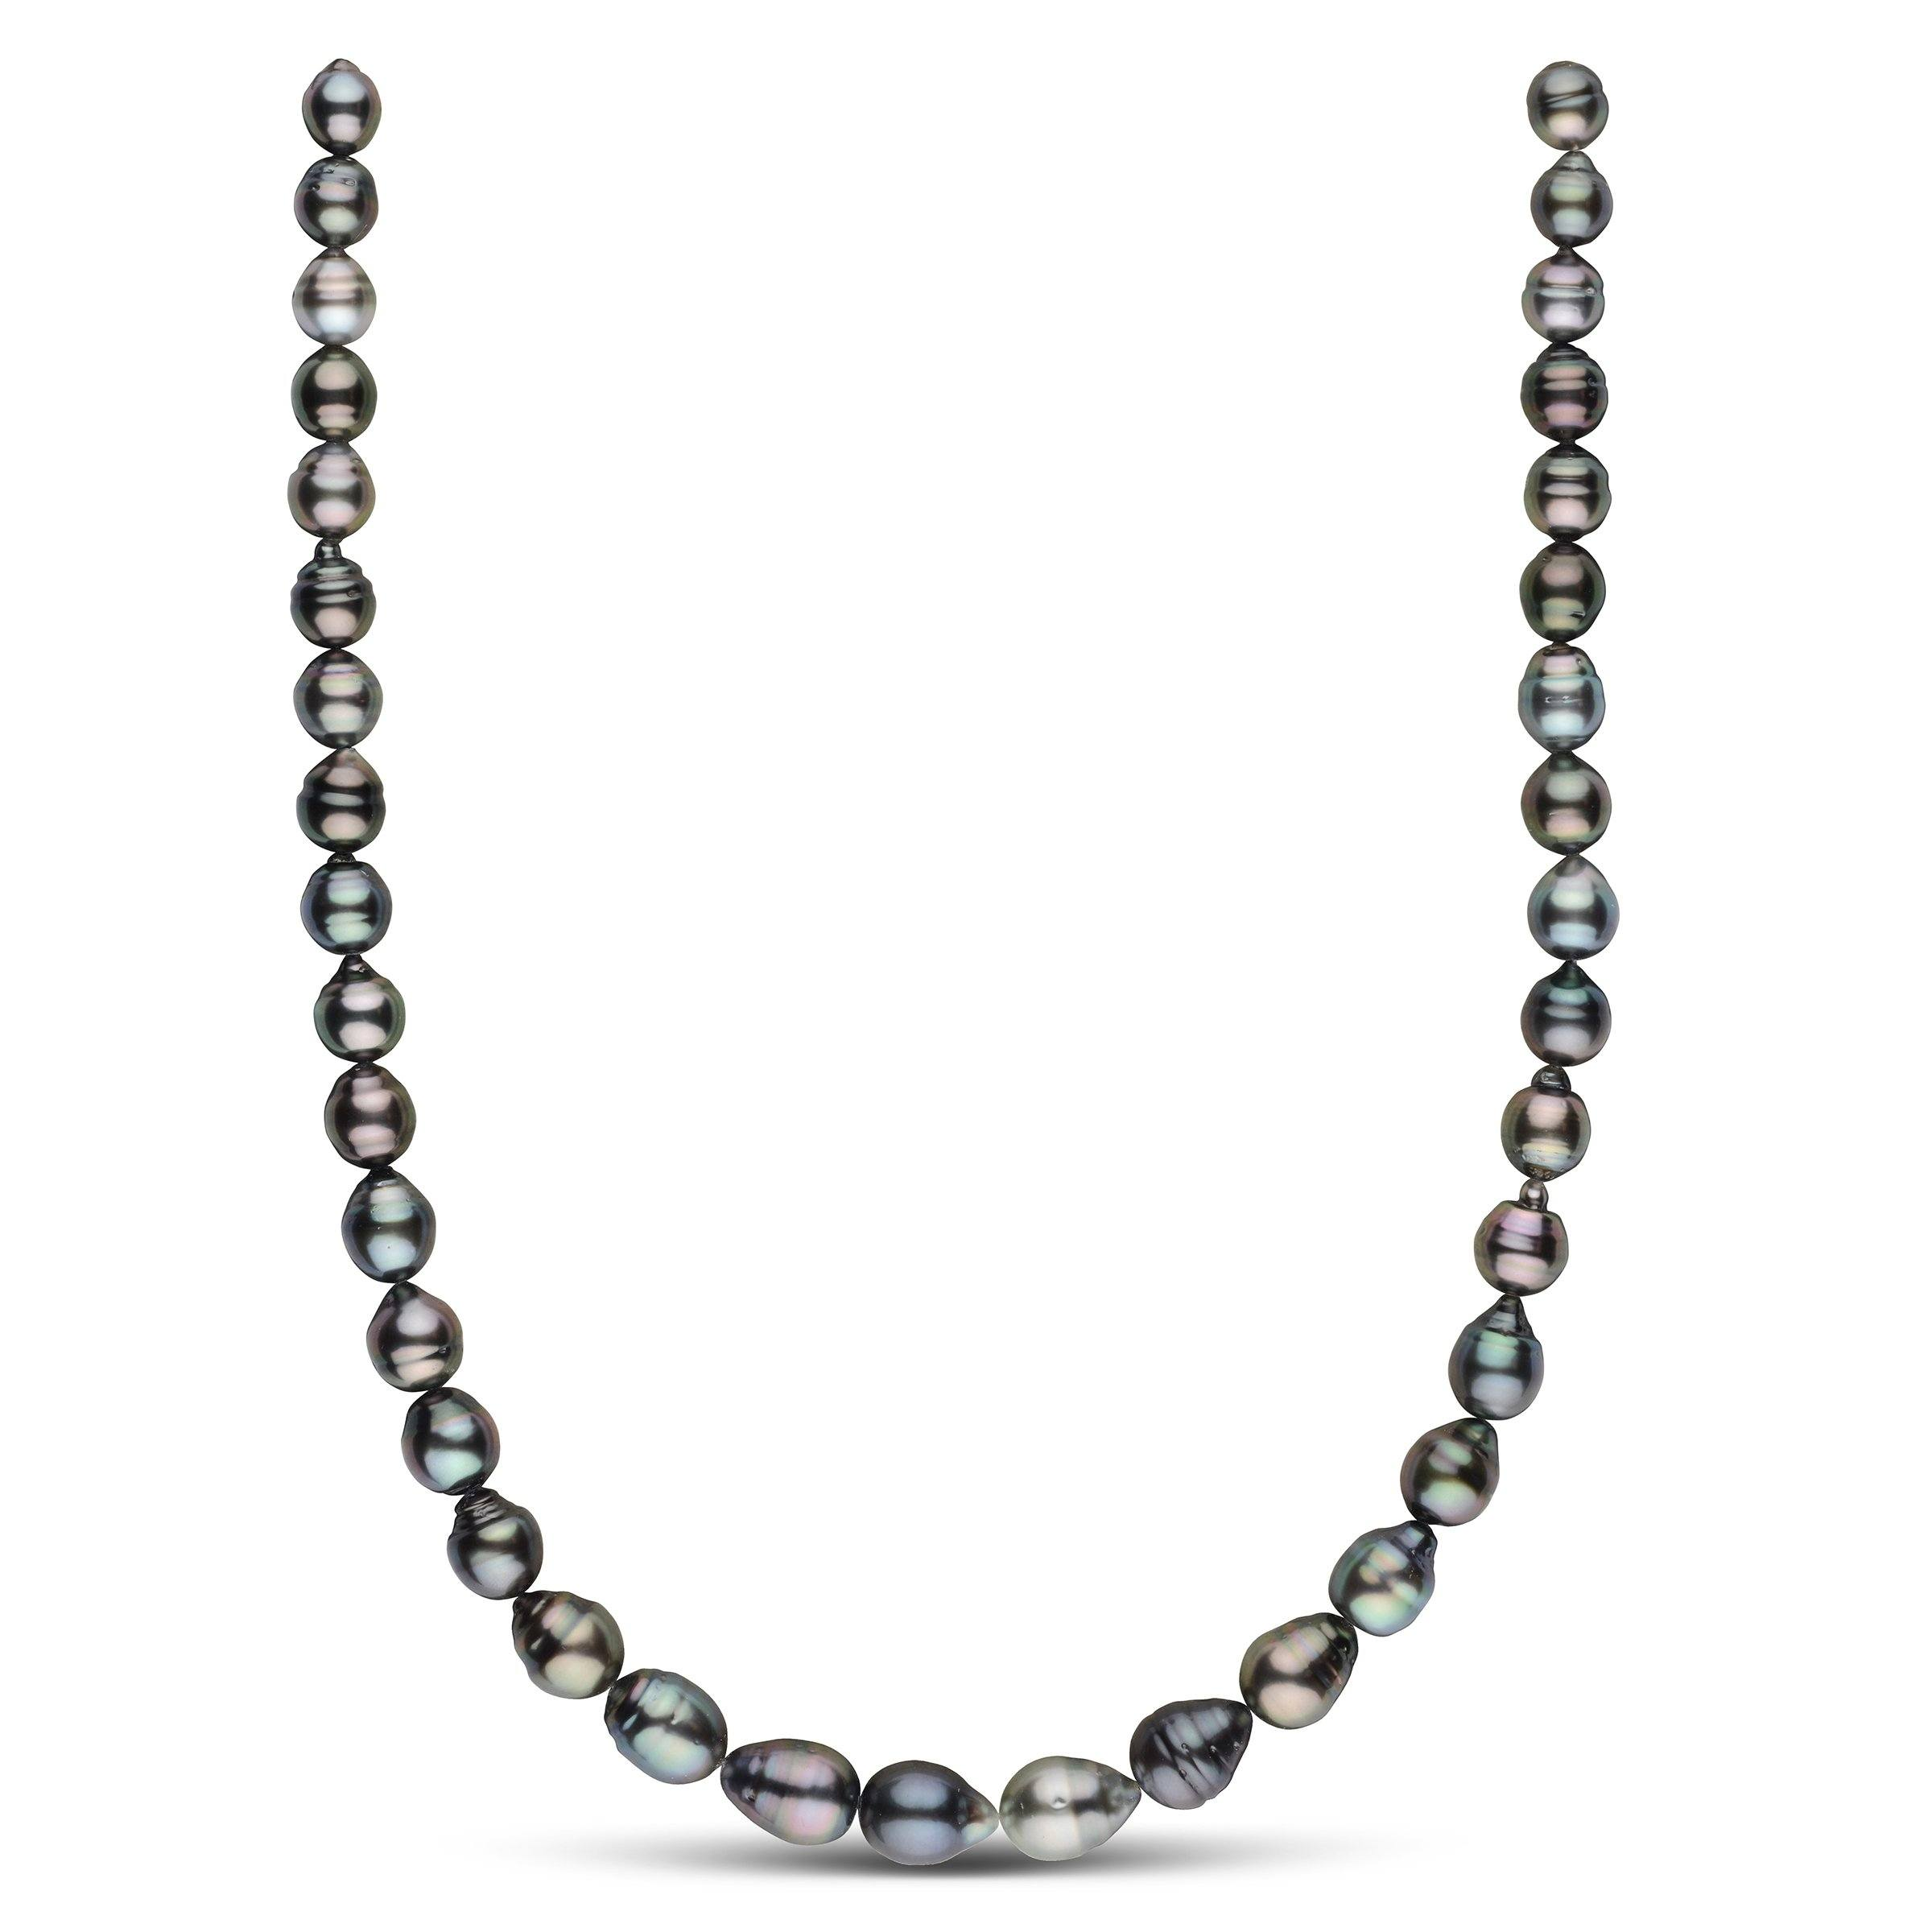 7.9-10.3 mm AA+/AAA Tahitian Baroque Pearl Necklace